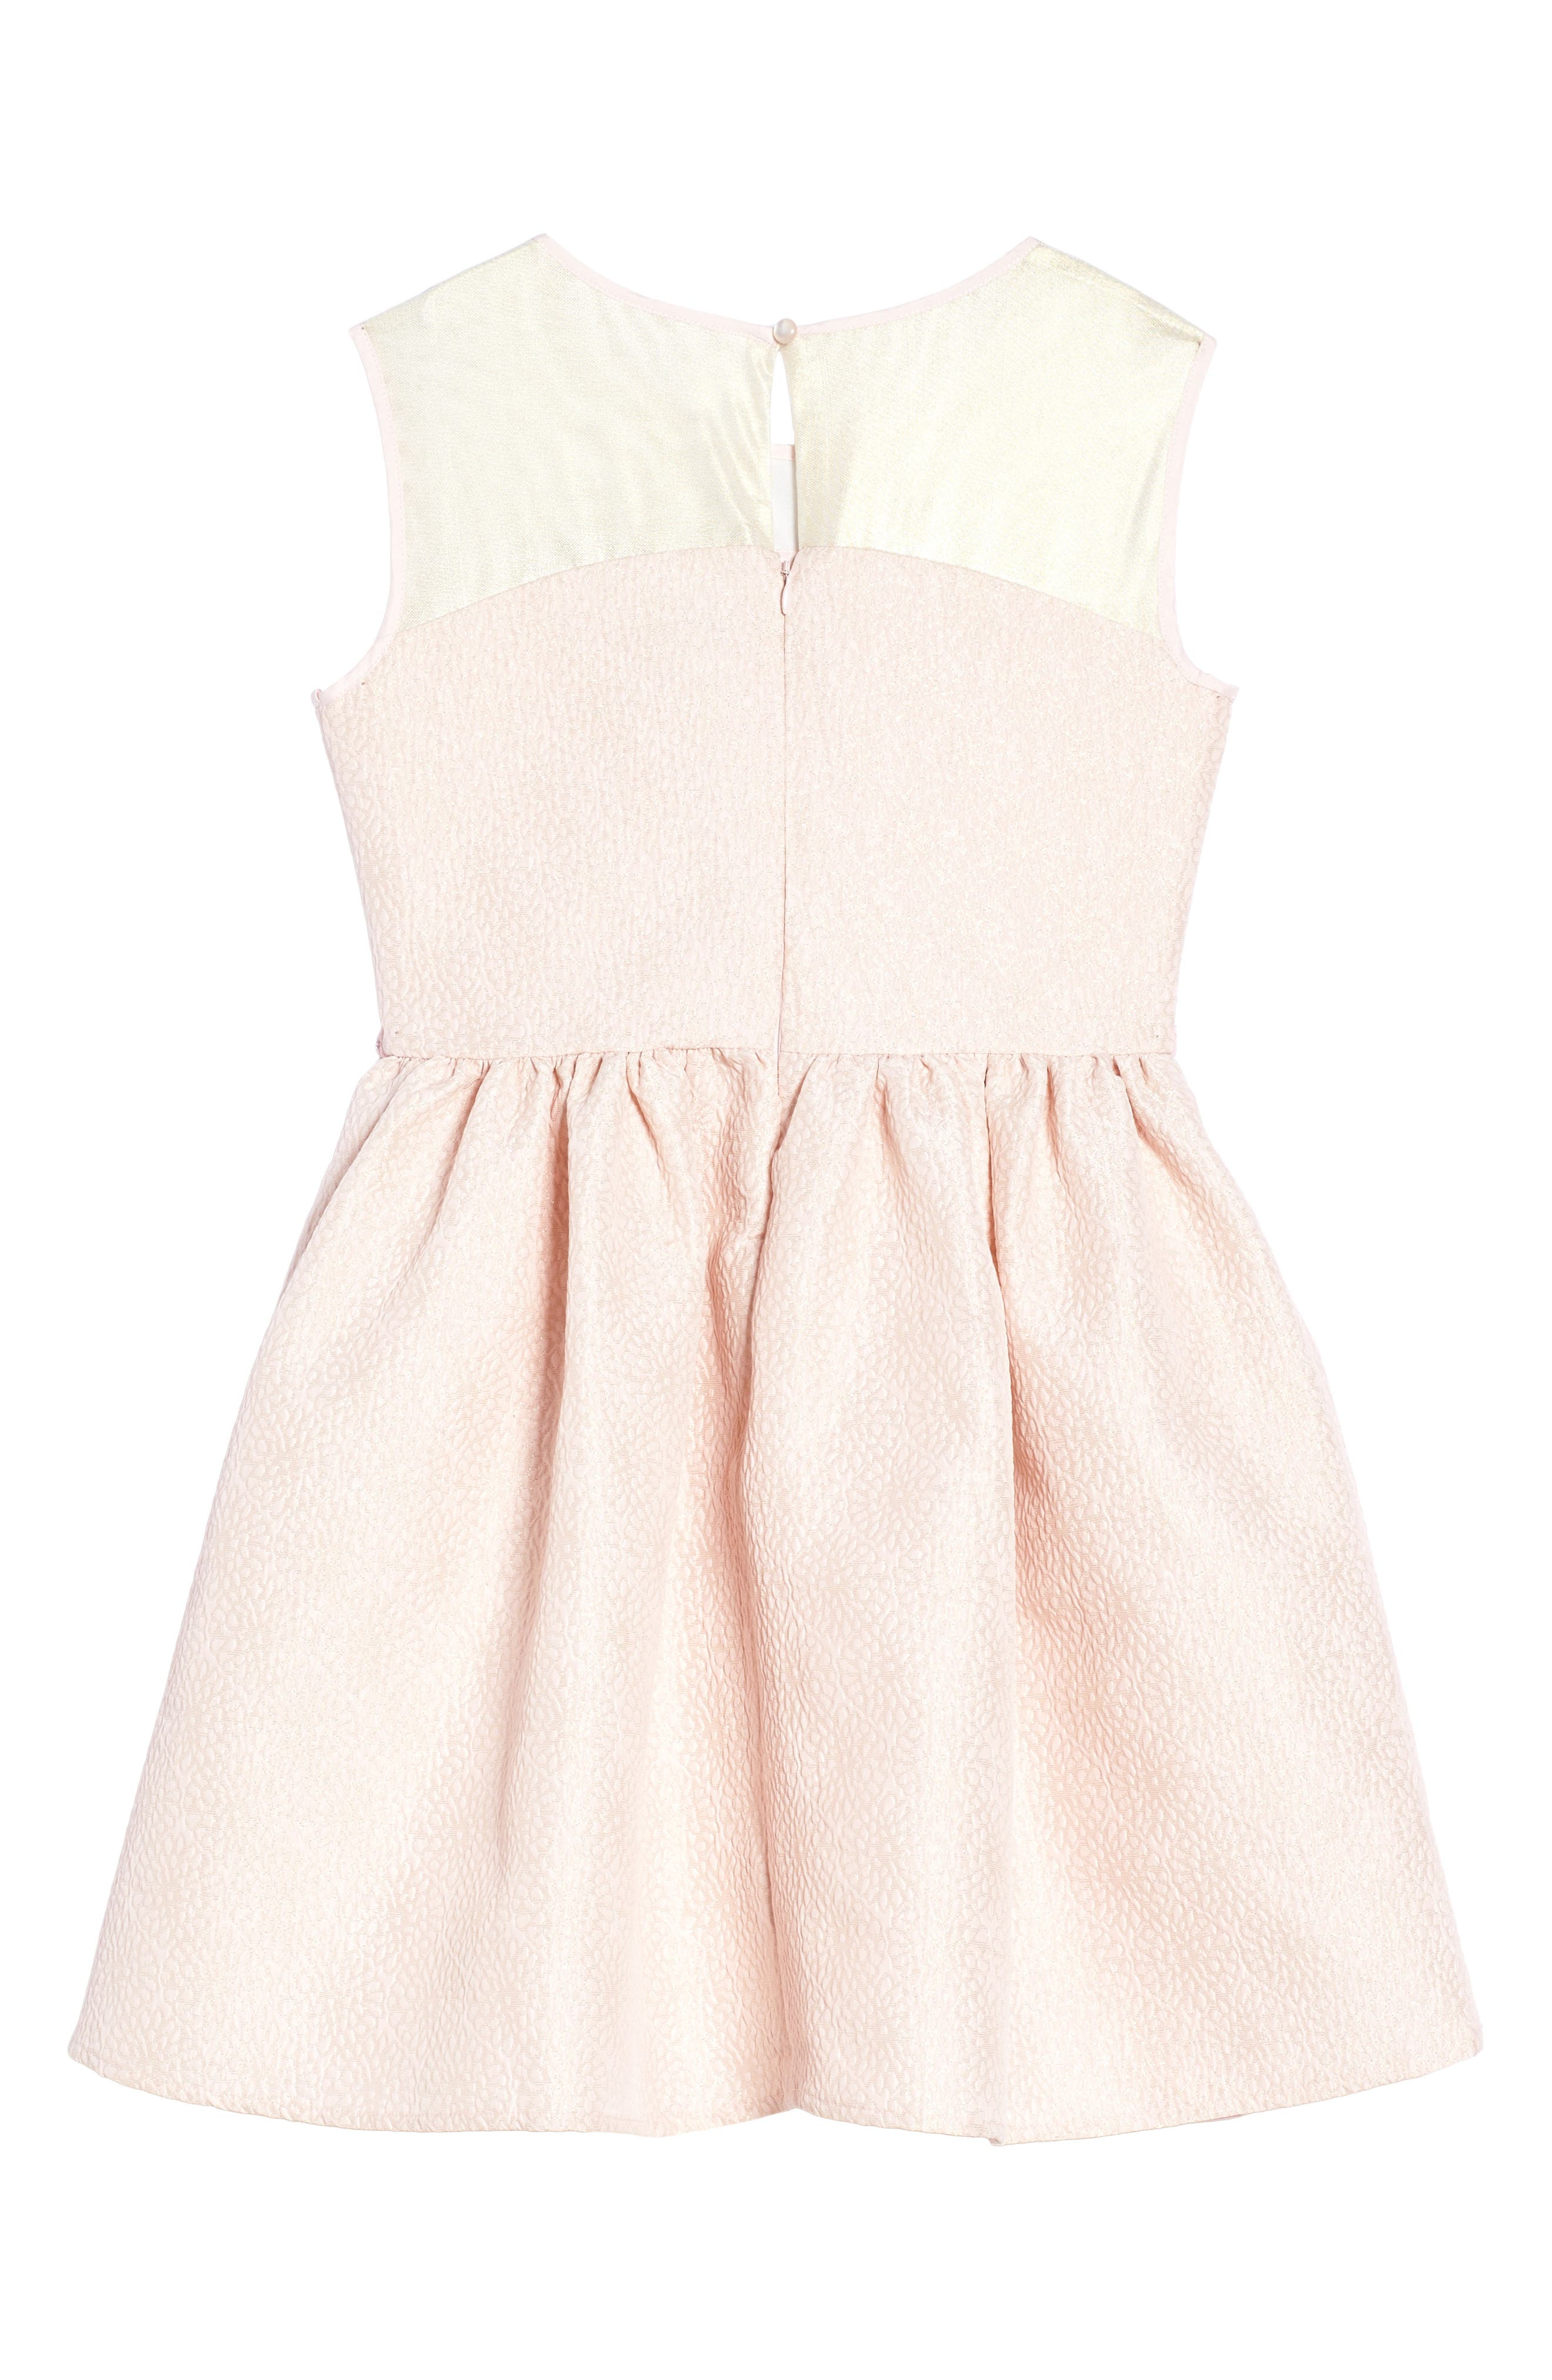 Fit & Flare Dress,                             Alternate thumbnail 2, color,                             Pink